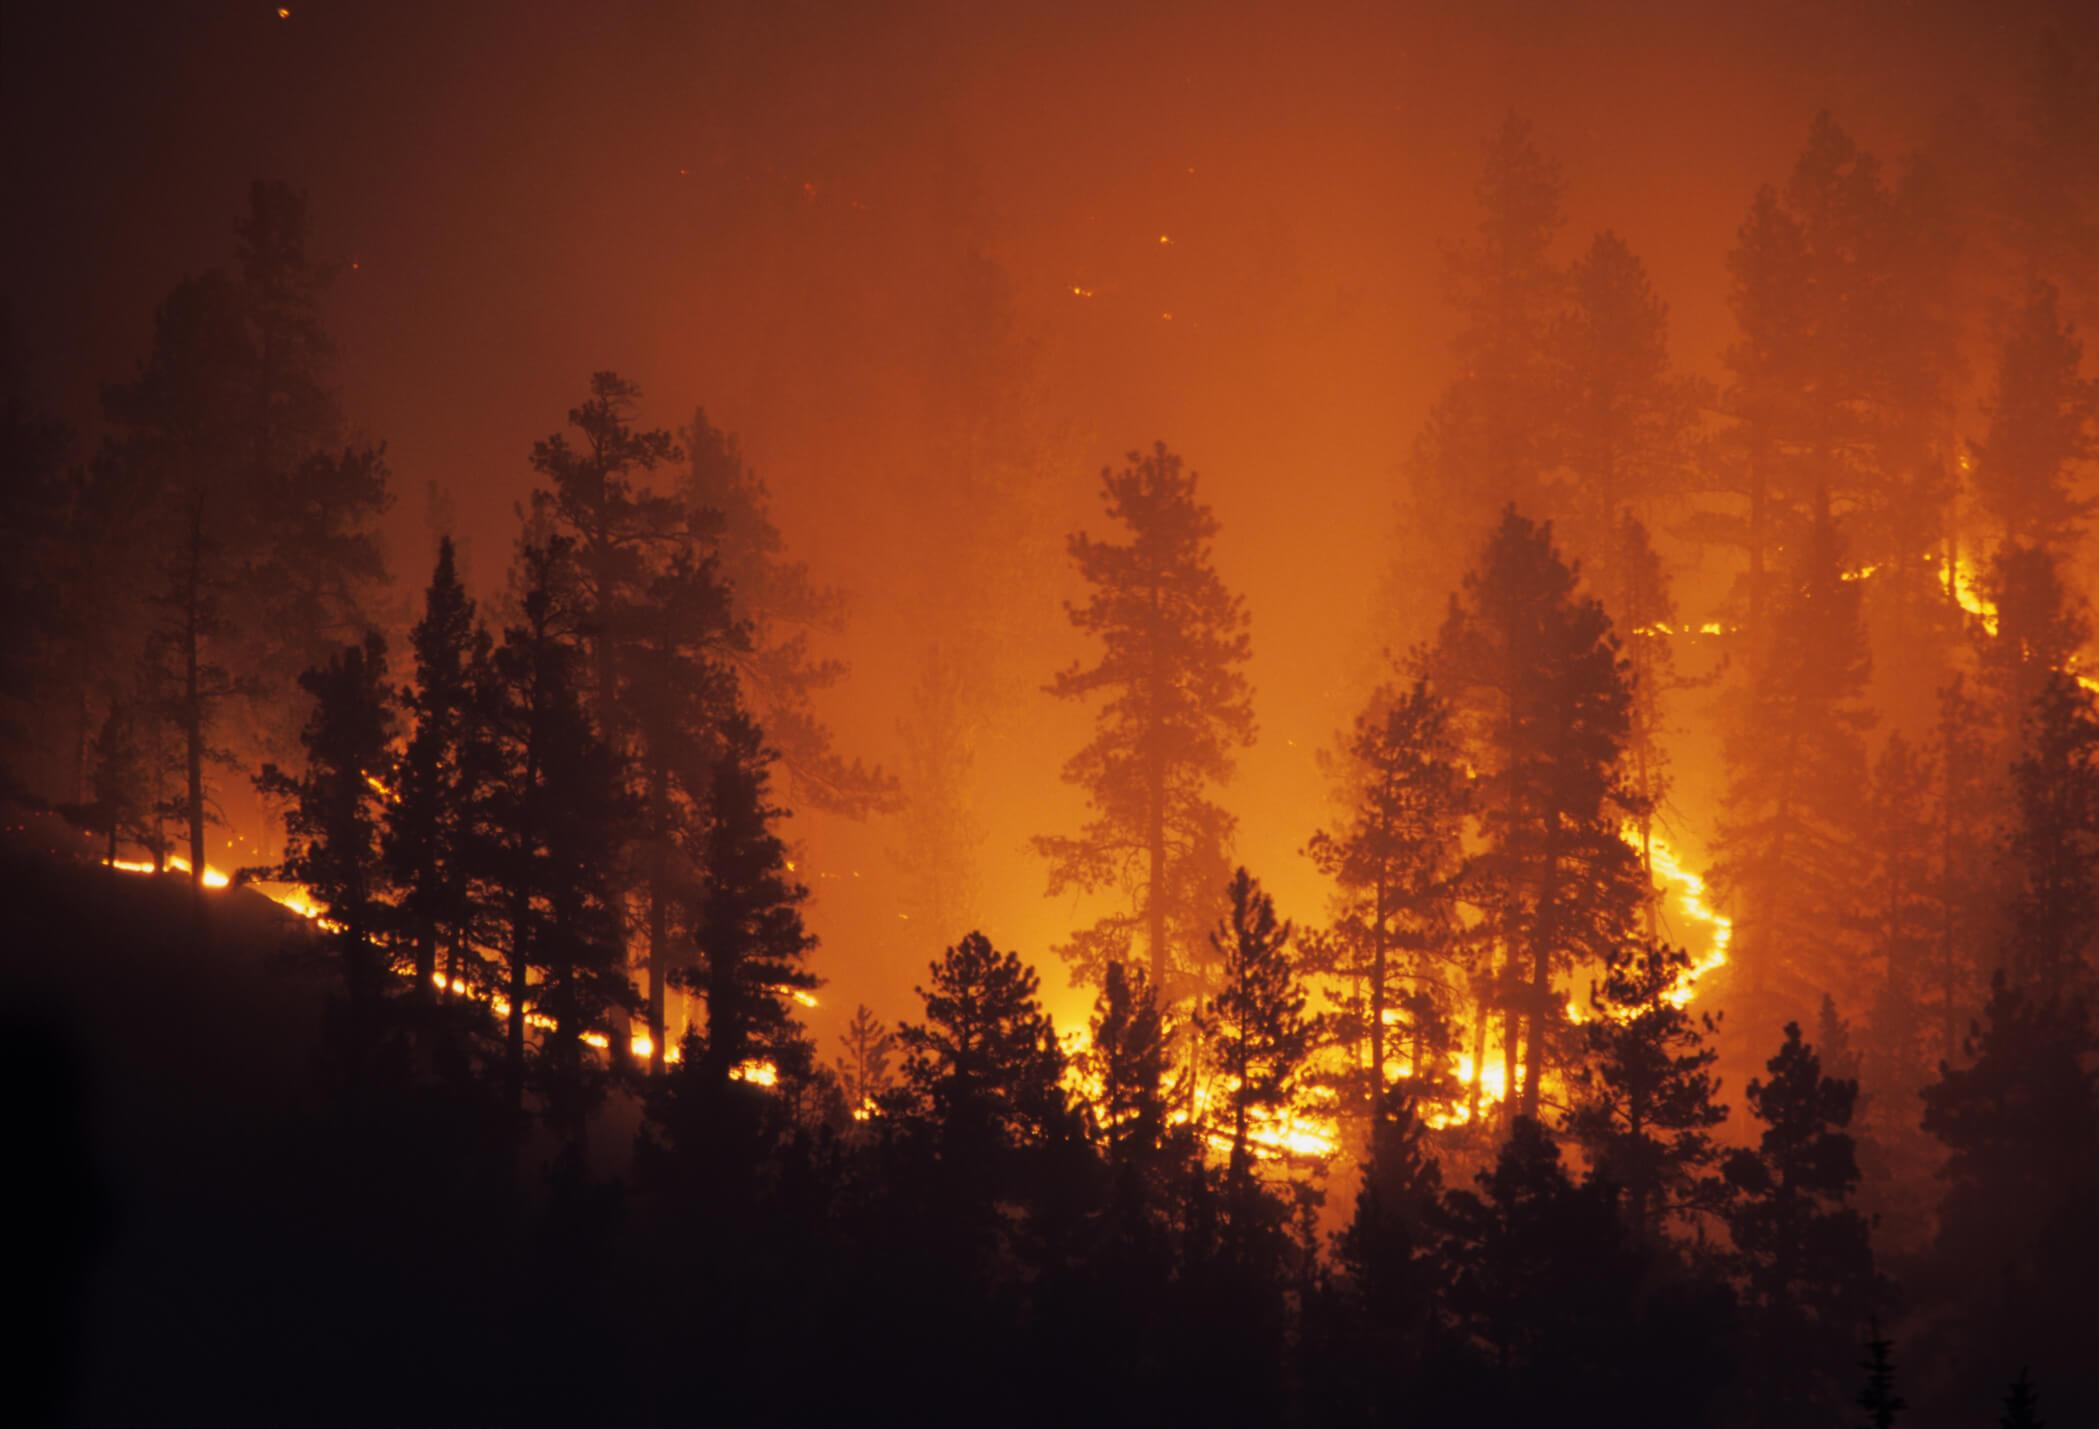 Hit by fires and droughts, California voters call climate change their top priority